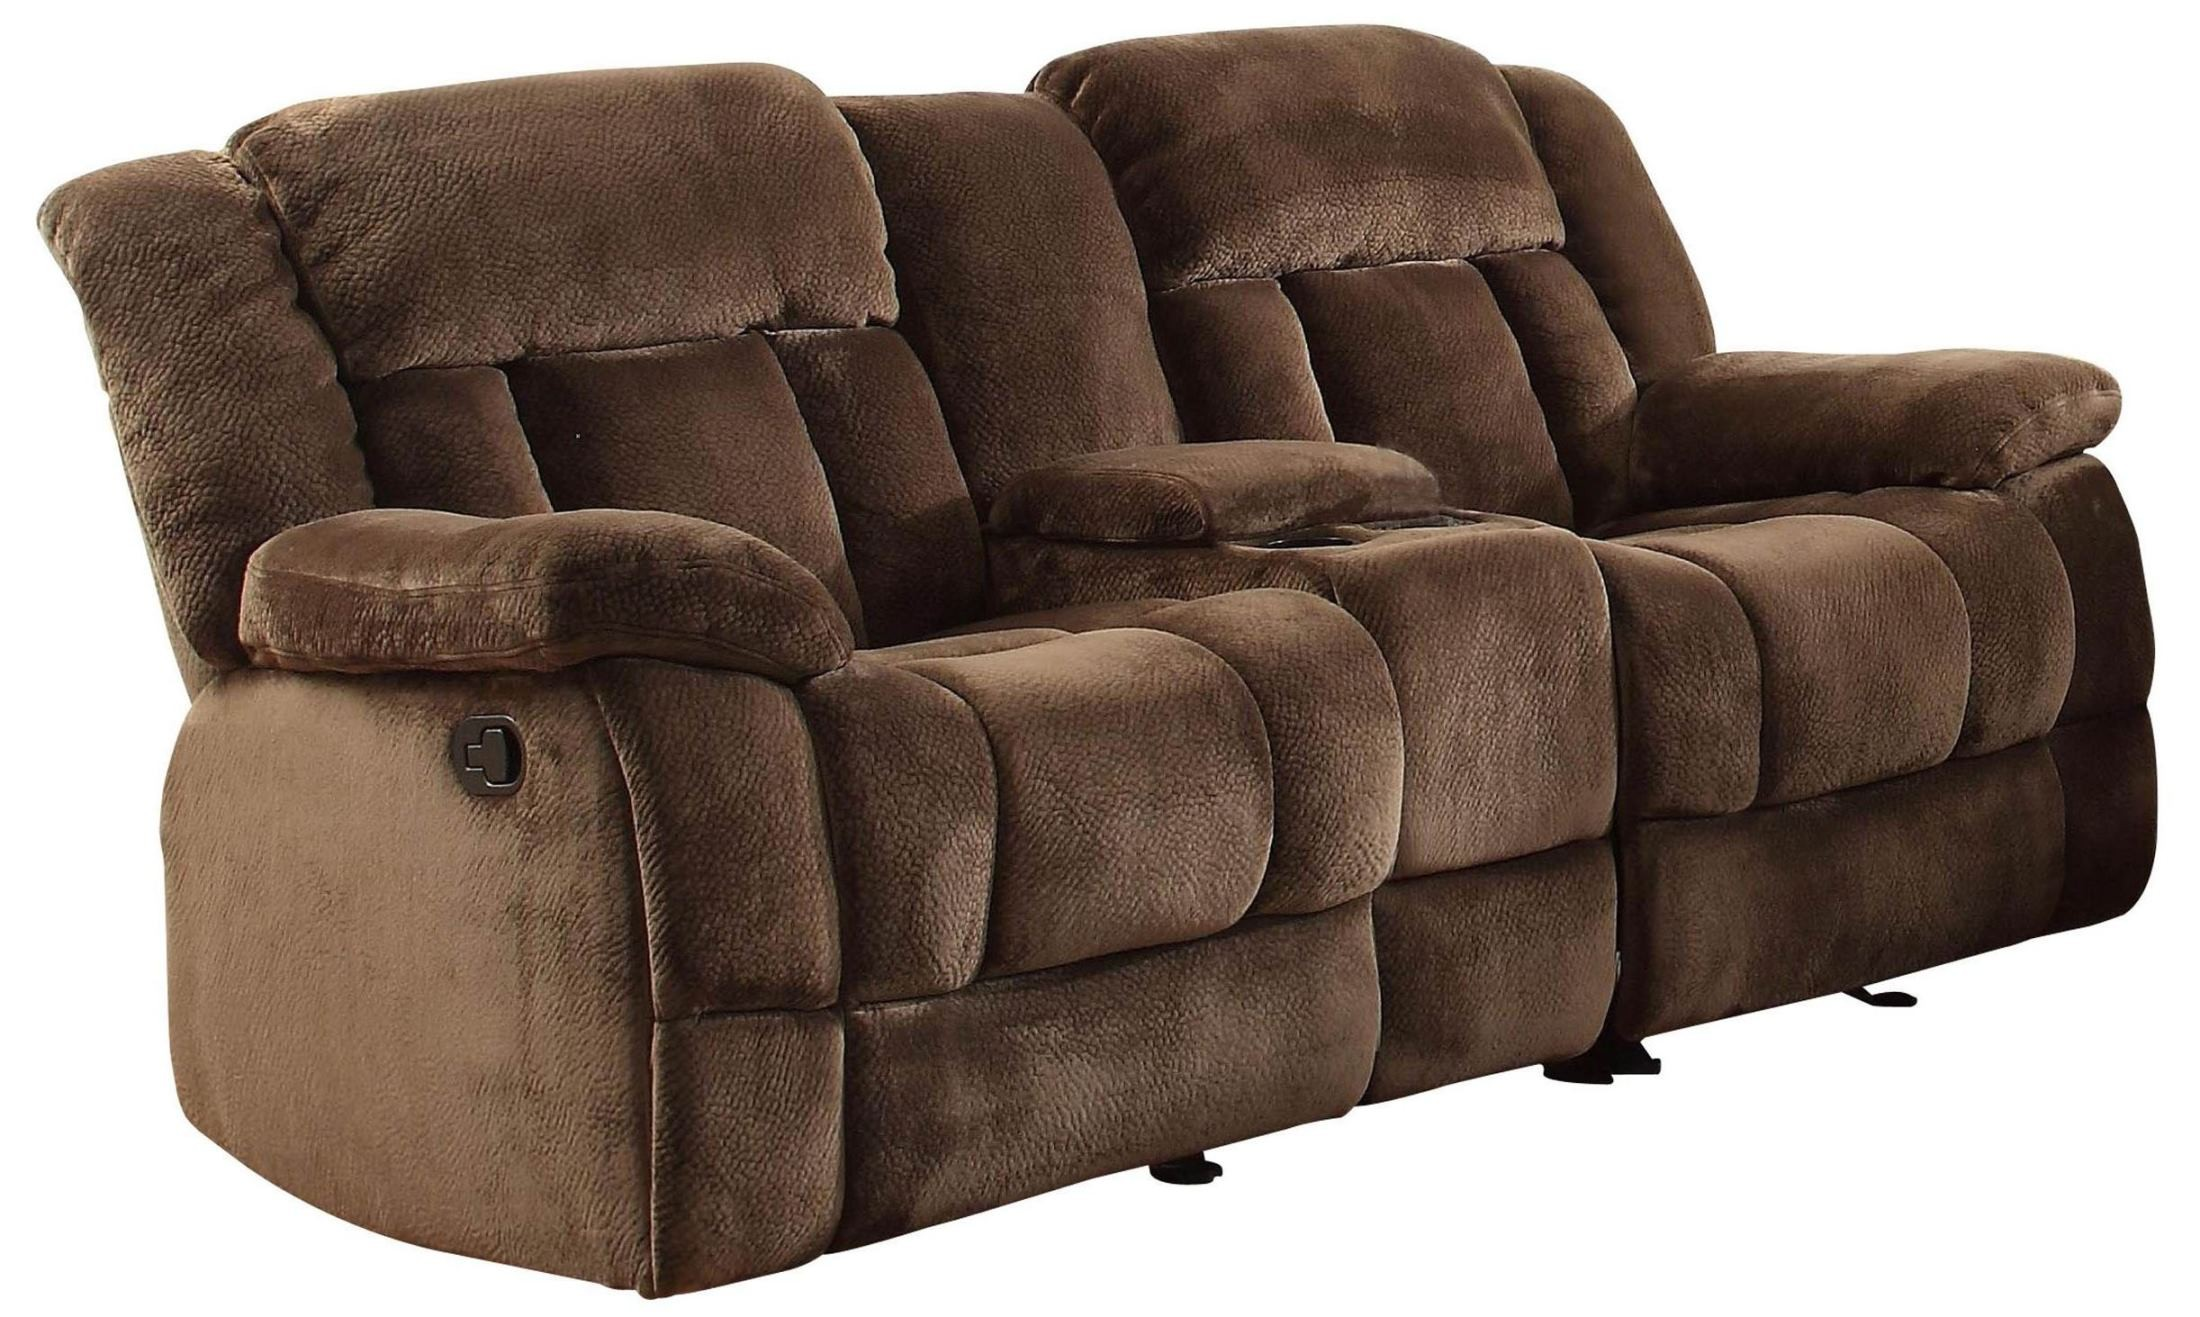 Double Wide Recliner Chair Laurelton Chocolate Double Glider Reclining Loveseat With